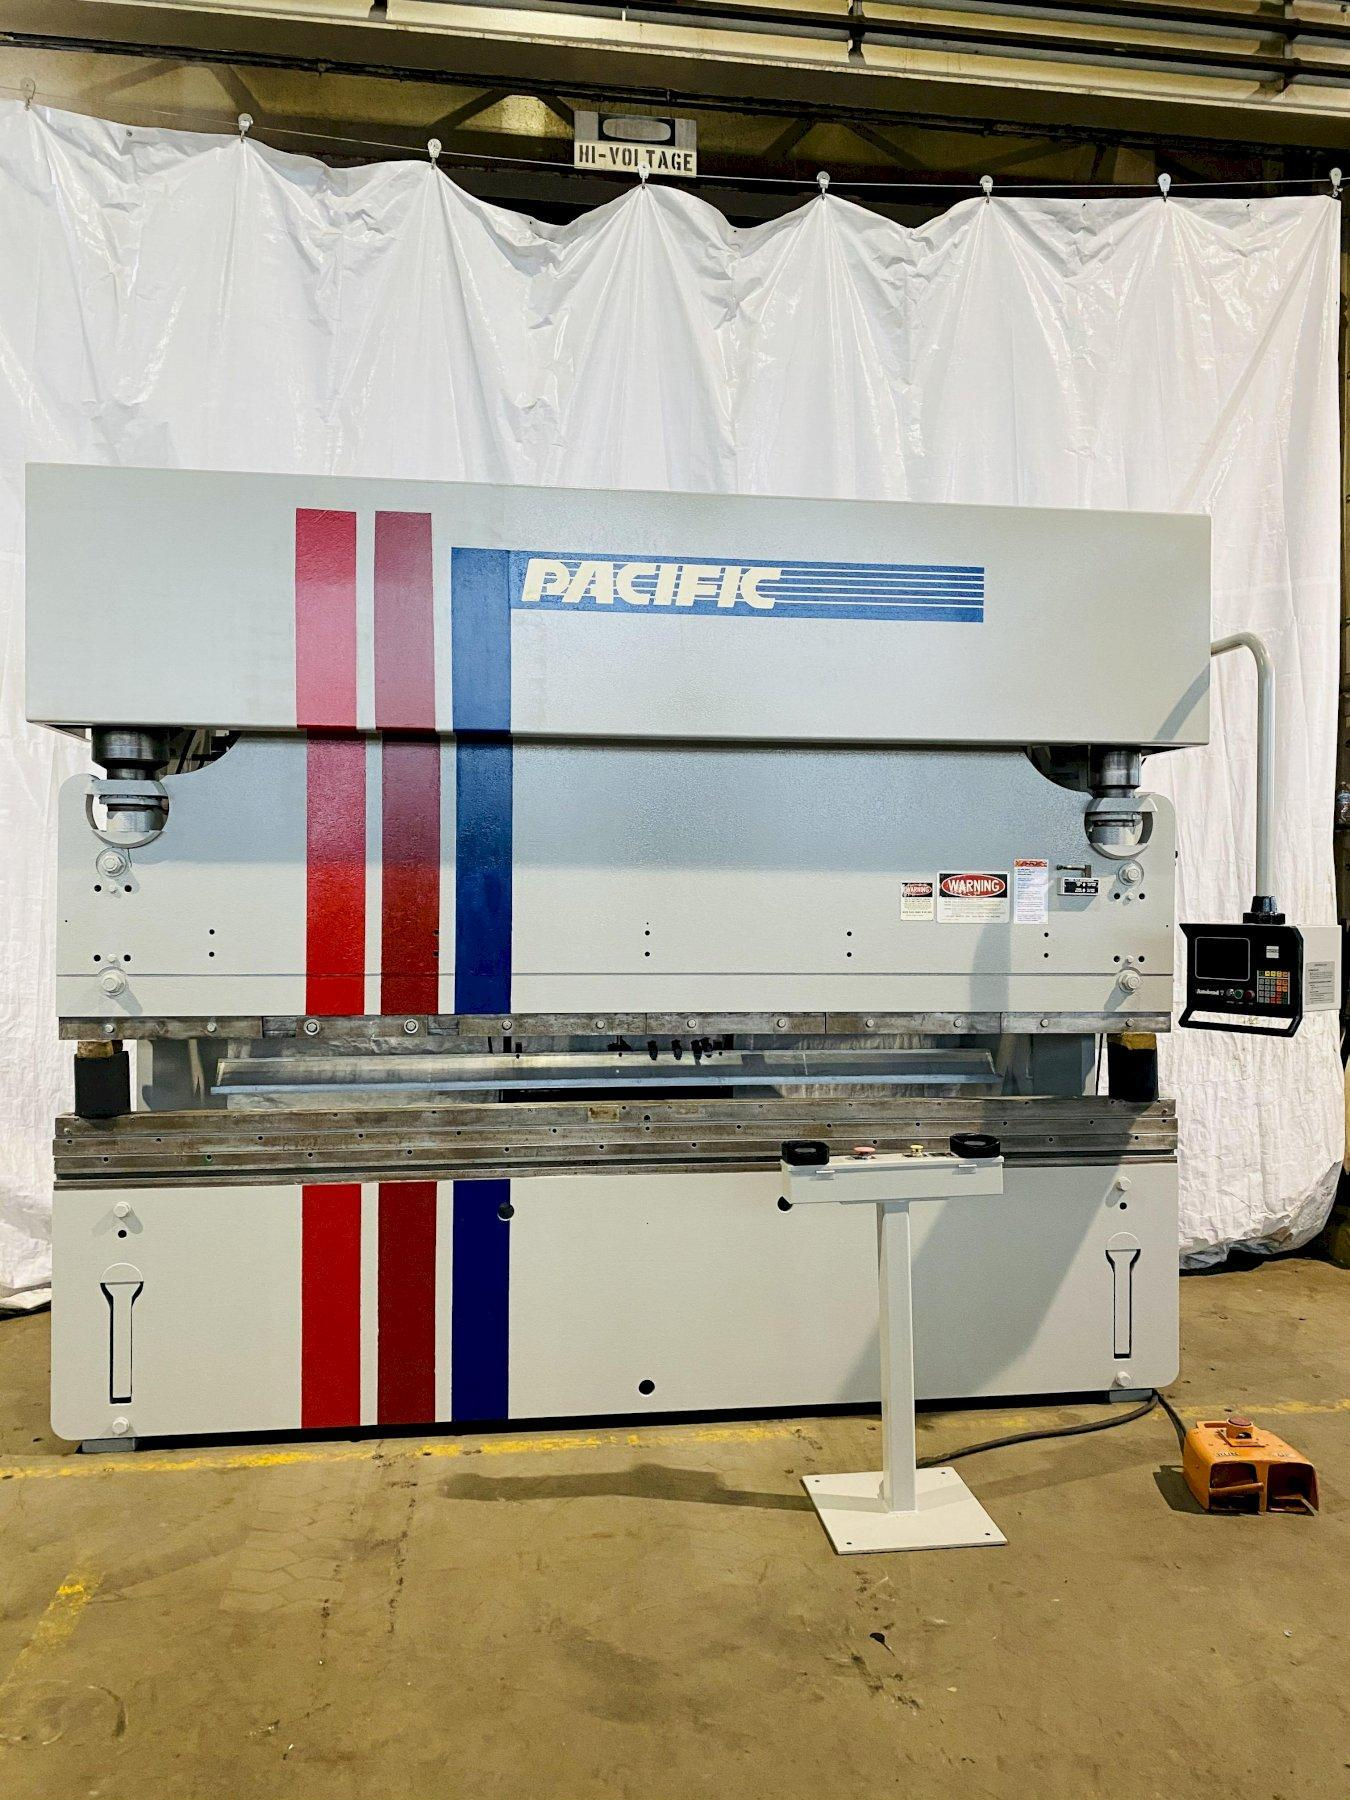 175 TON X 12' PACIFIC MODEL J175-12 II HYDRAULIC PRESS BRAKE W/ HURCO AUTOBEND 7 BACKGAUGE. STOCK # 1058120